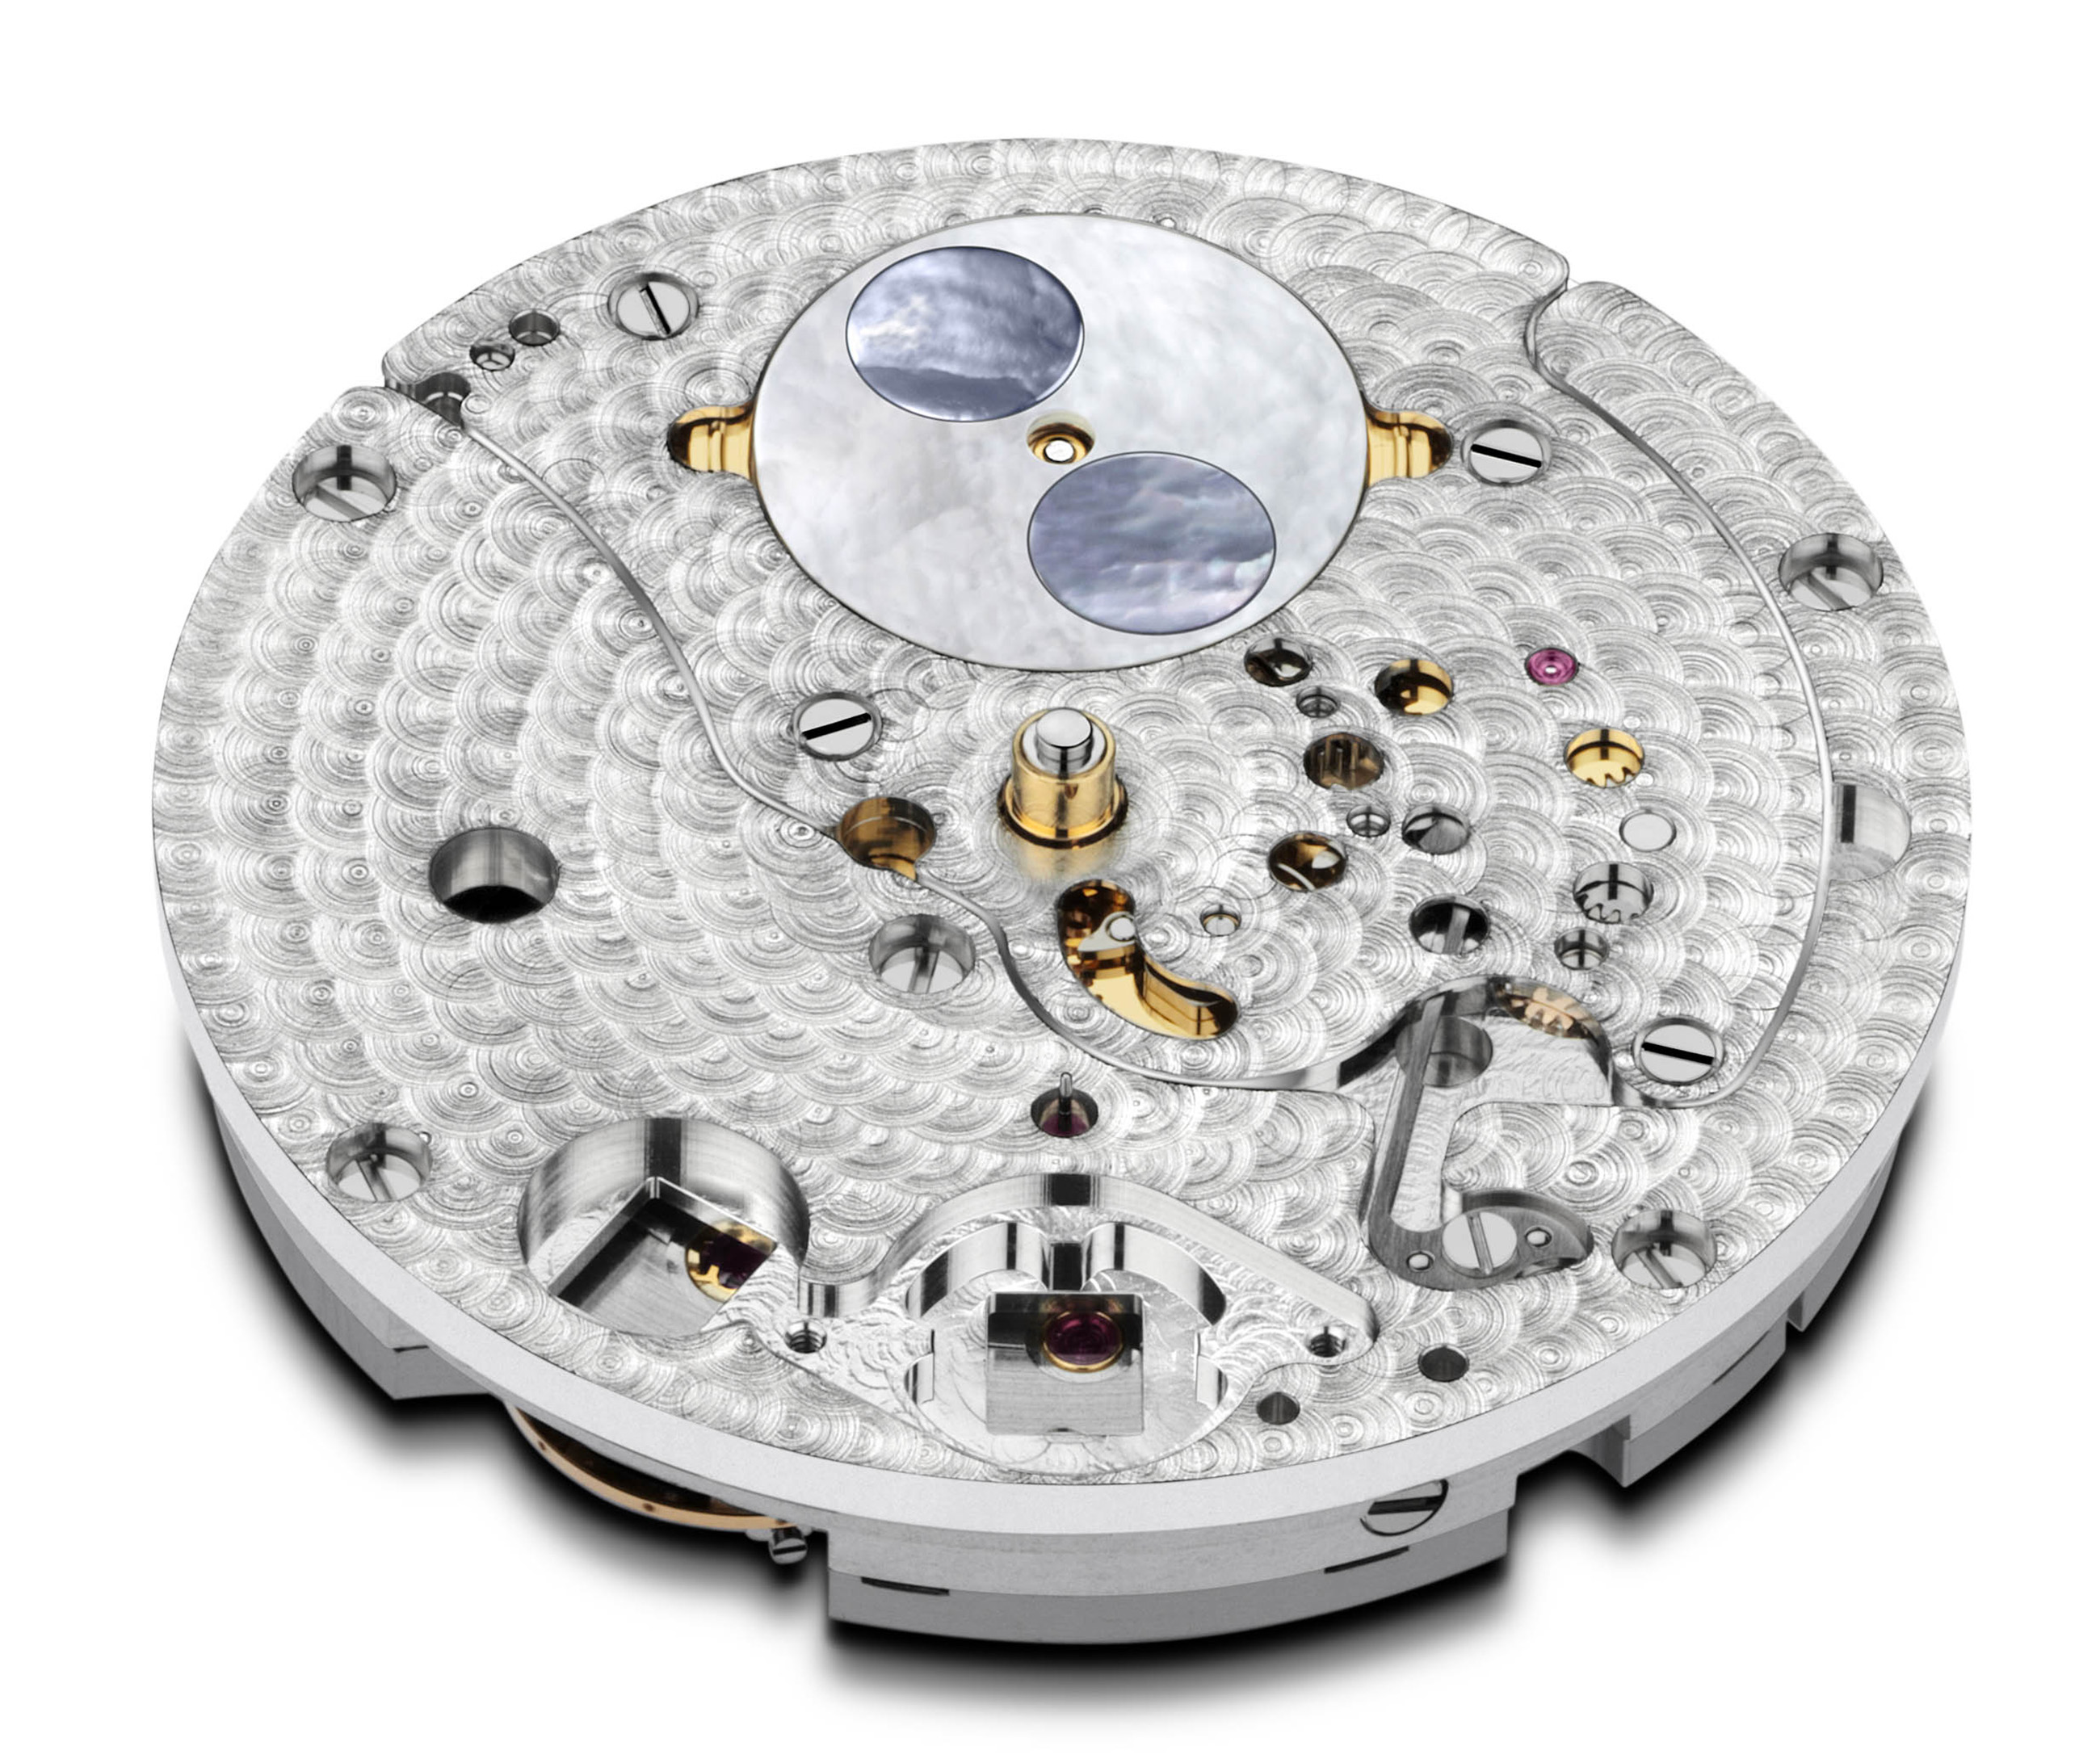 Imperiale Moonphase 384246-1001 - 96.25-C movement copy.jpg